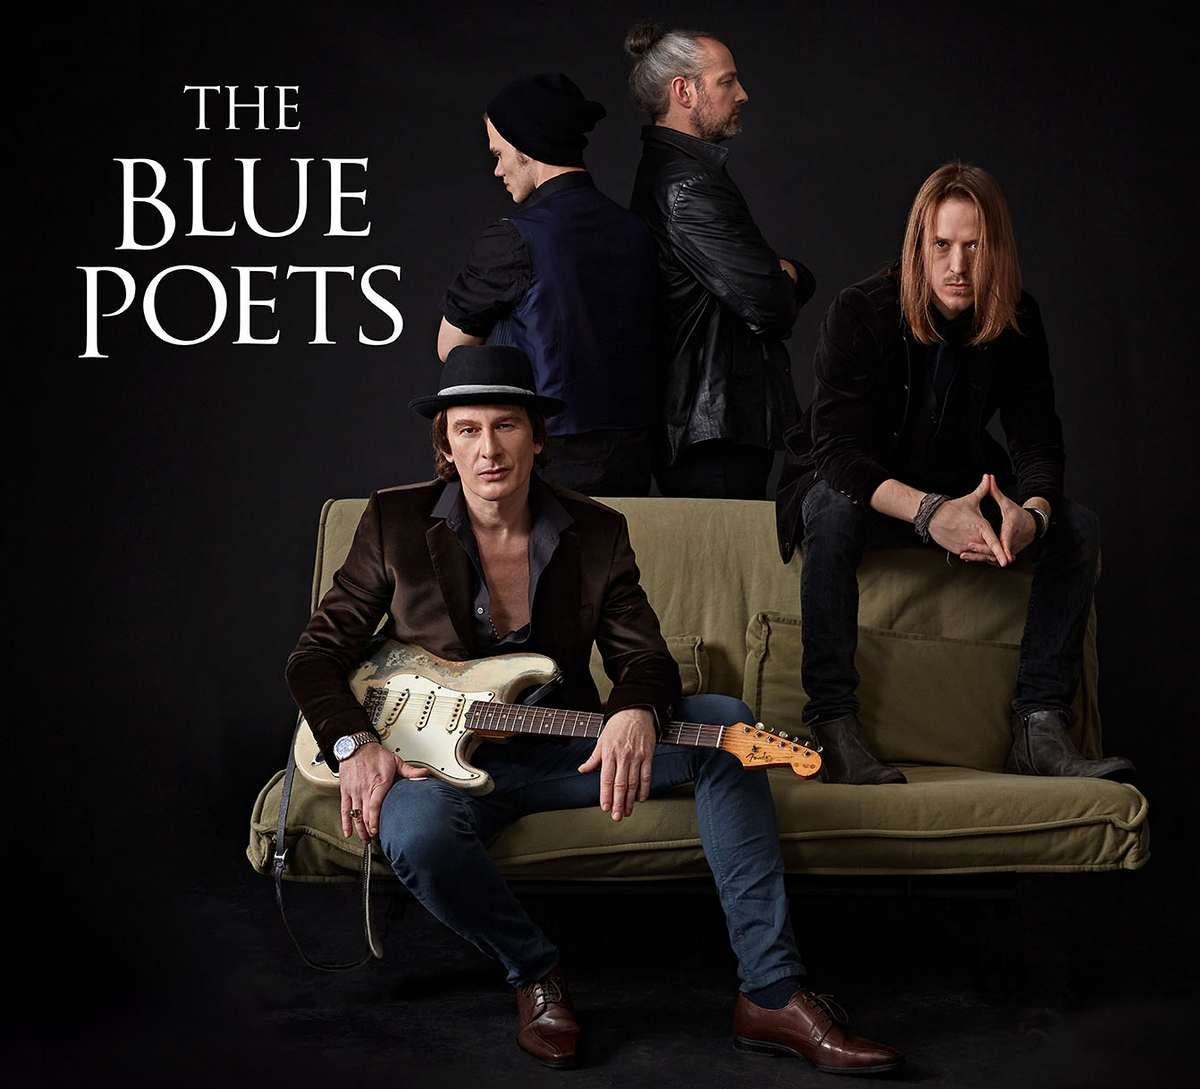 The Blue Poets: The Blue Poets (2016) Book Cover